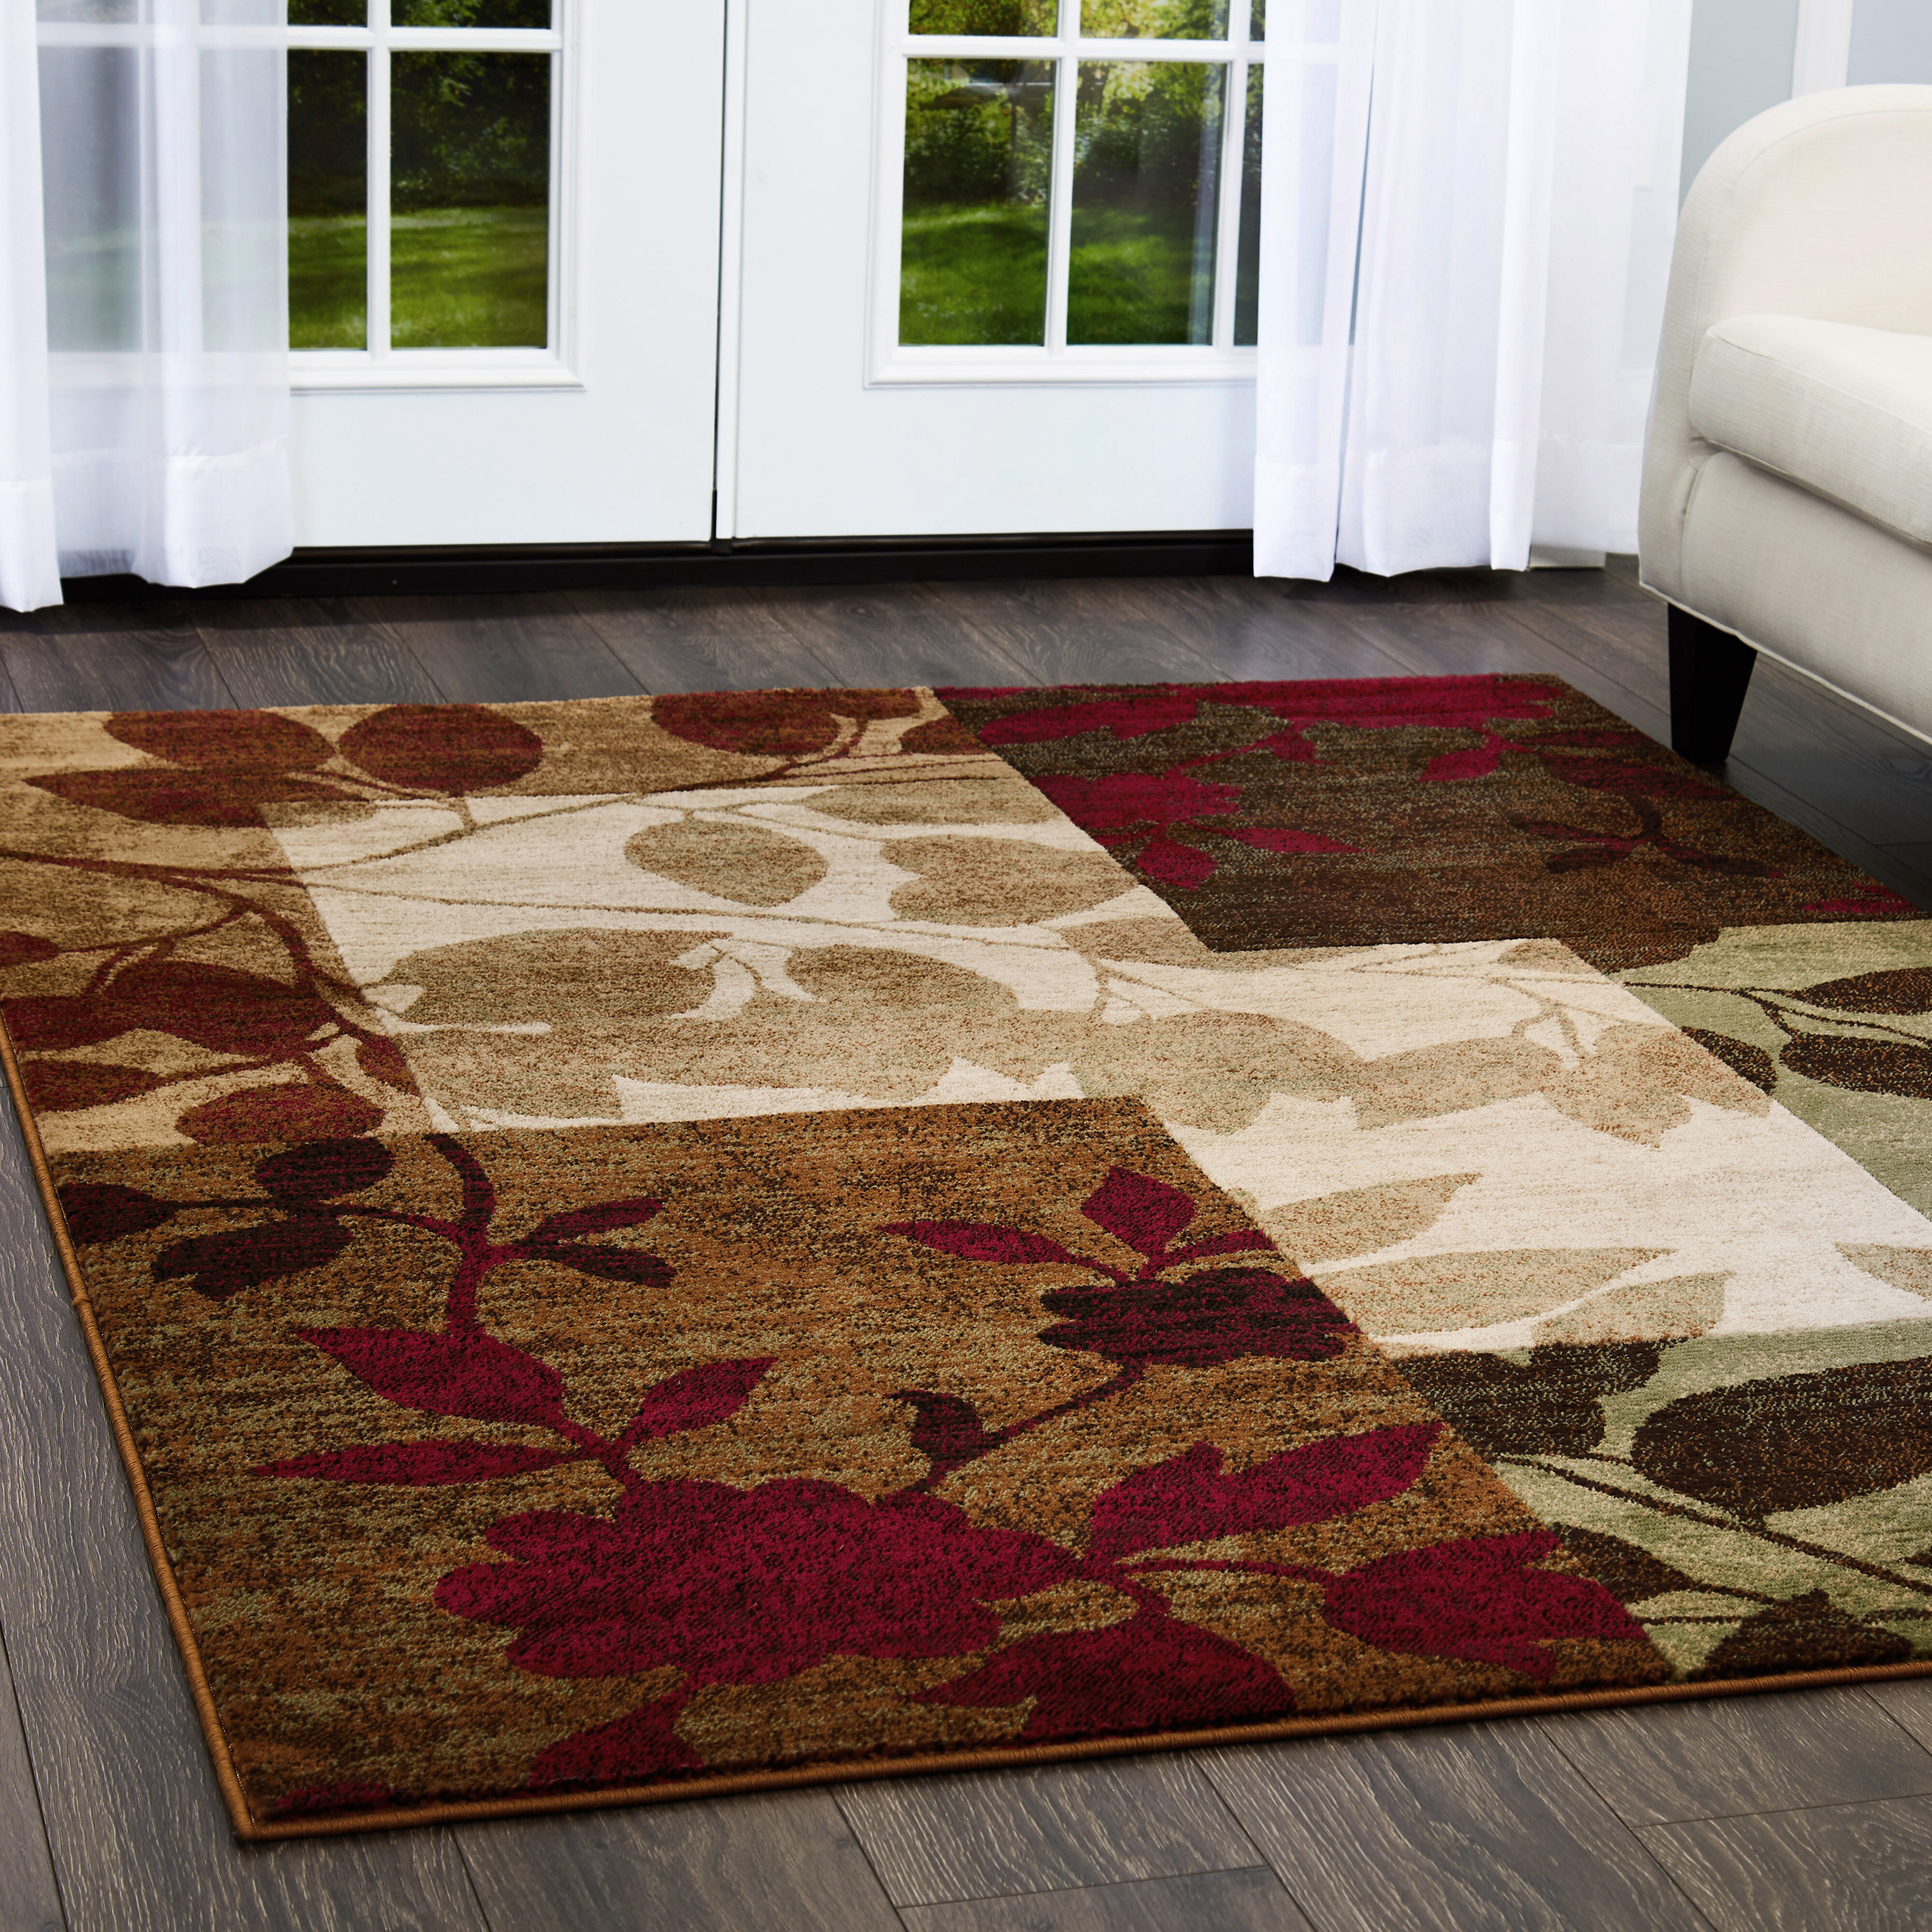 Green Red Area Rugs You Ll Love In 2021 Wayfair